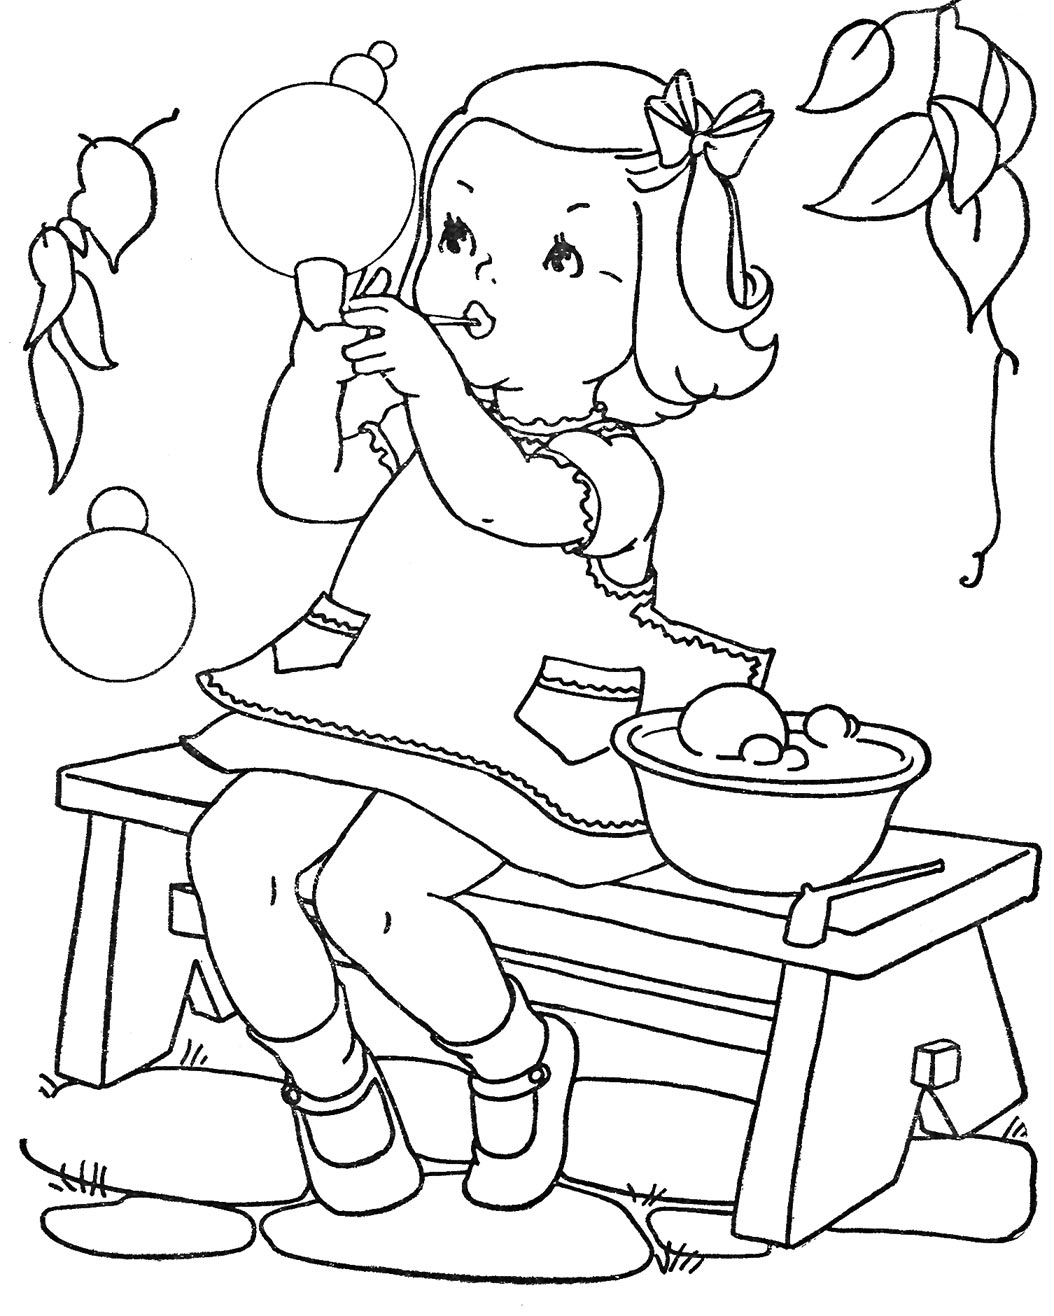 cassic art coloring pages - photo#47